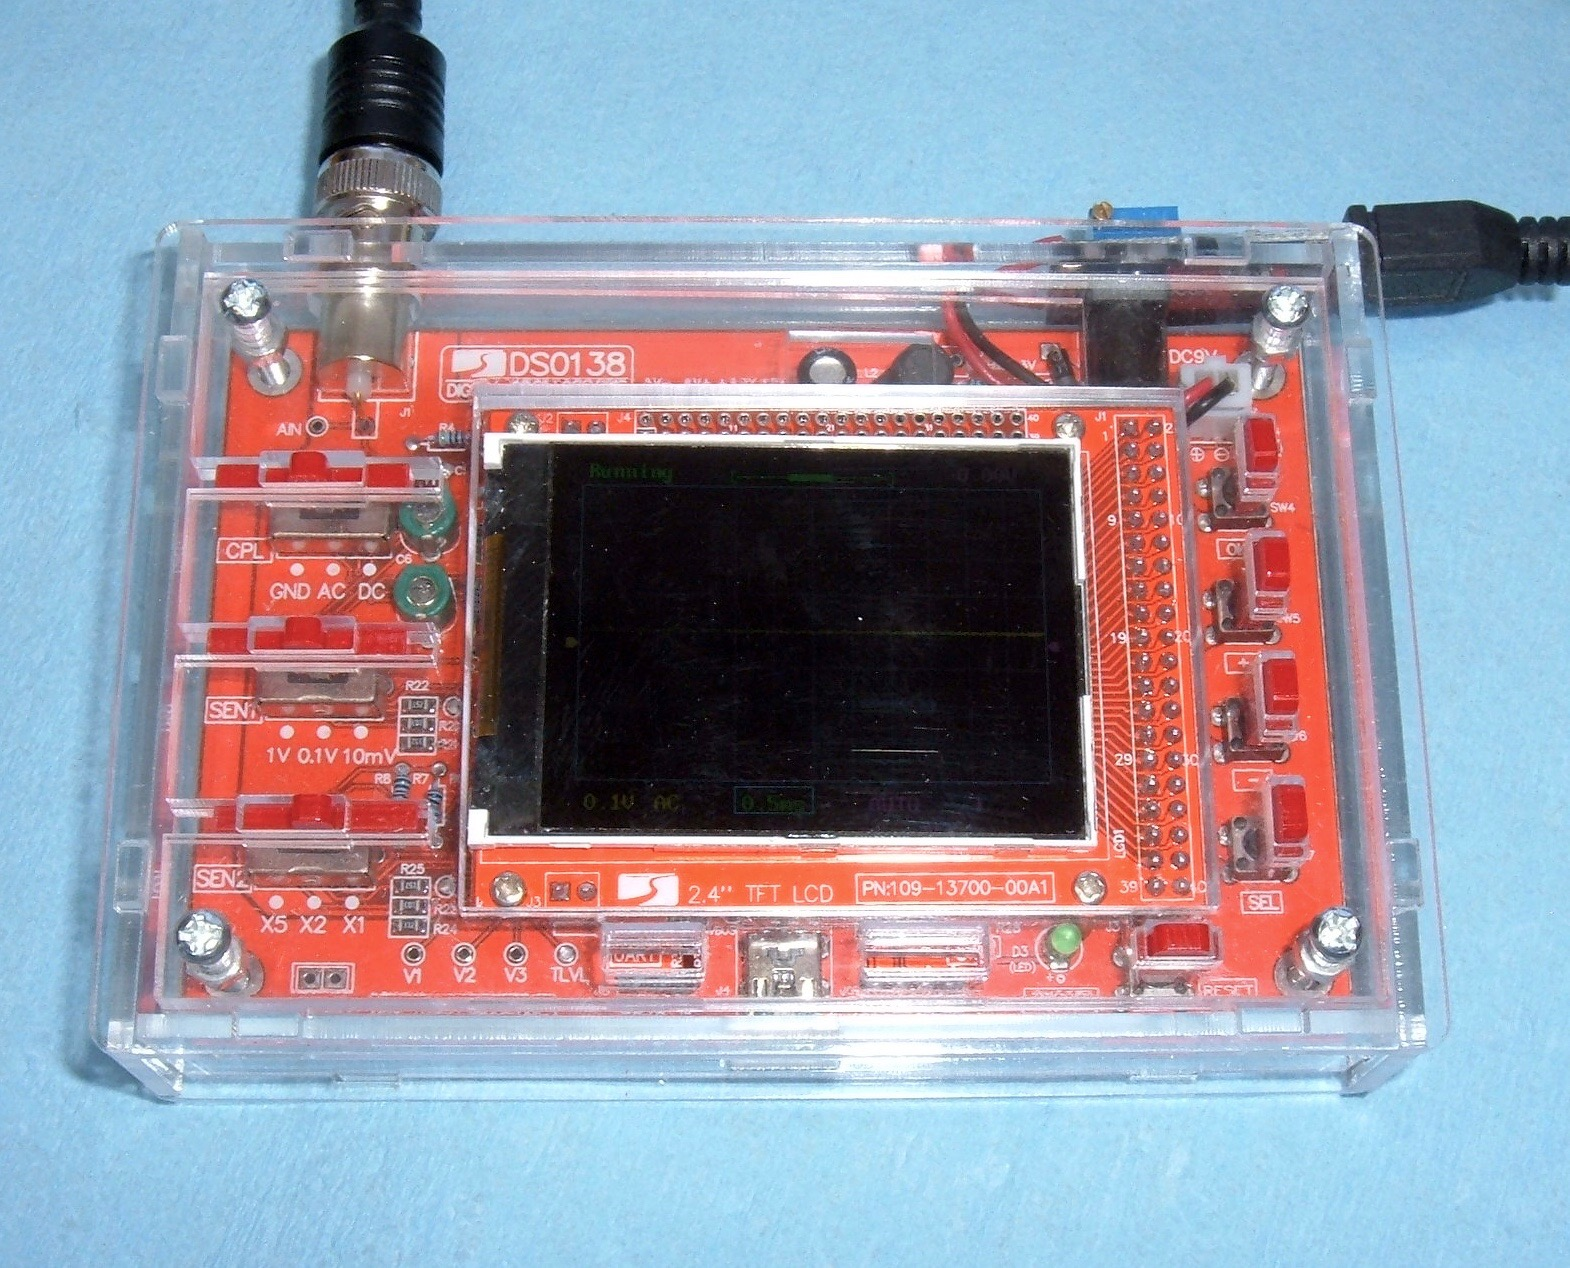 Syonyks project blog dso138 scope acrylic housing assembly and this is a 200khz sample rate oscilloscope that is normally sold as a solder it yourself kit for students and hobbyists to assemble solutioingenieria Image collections